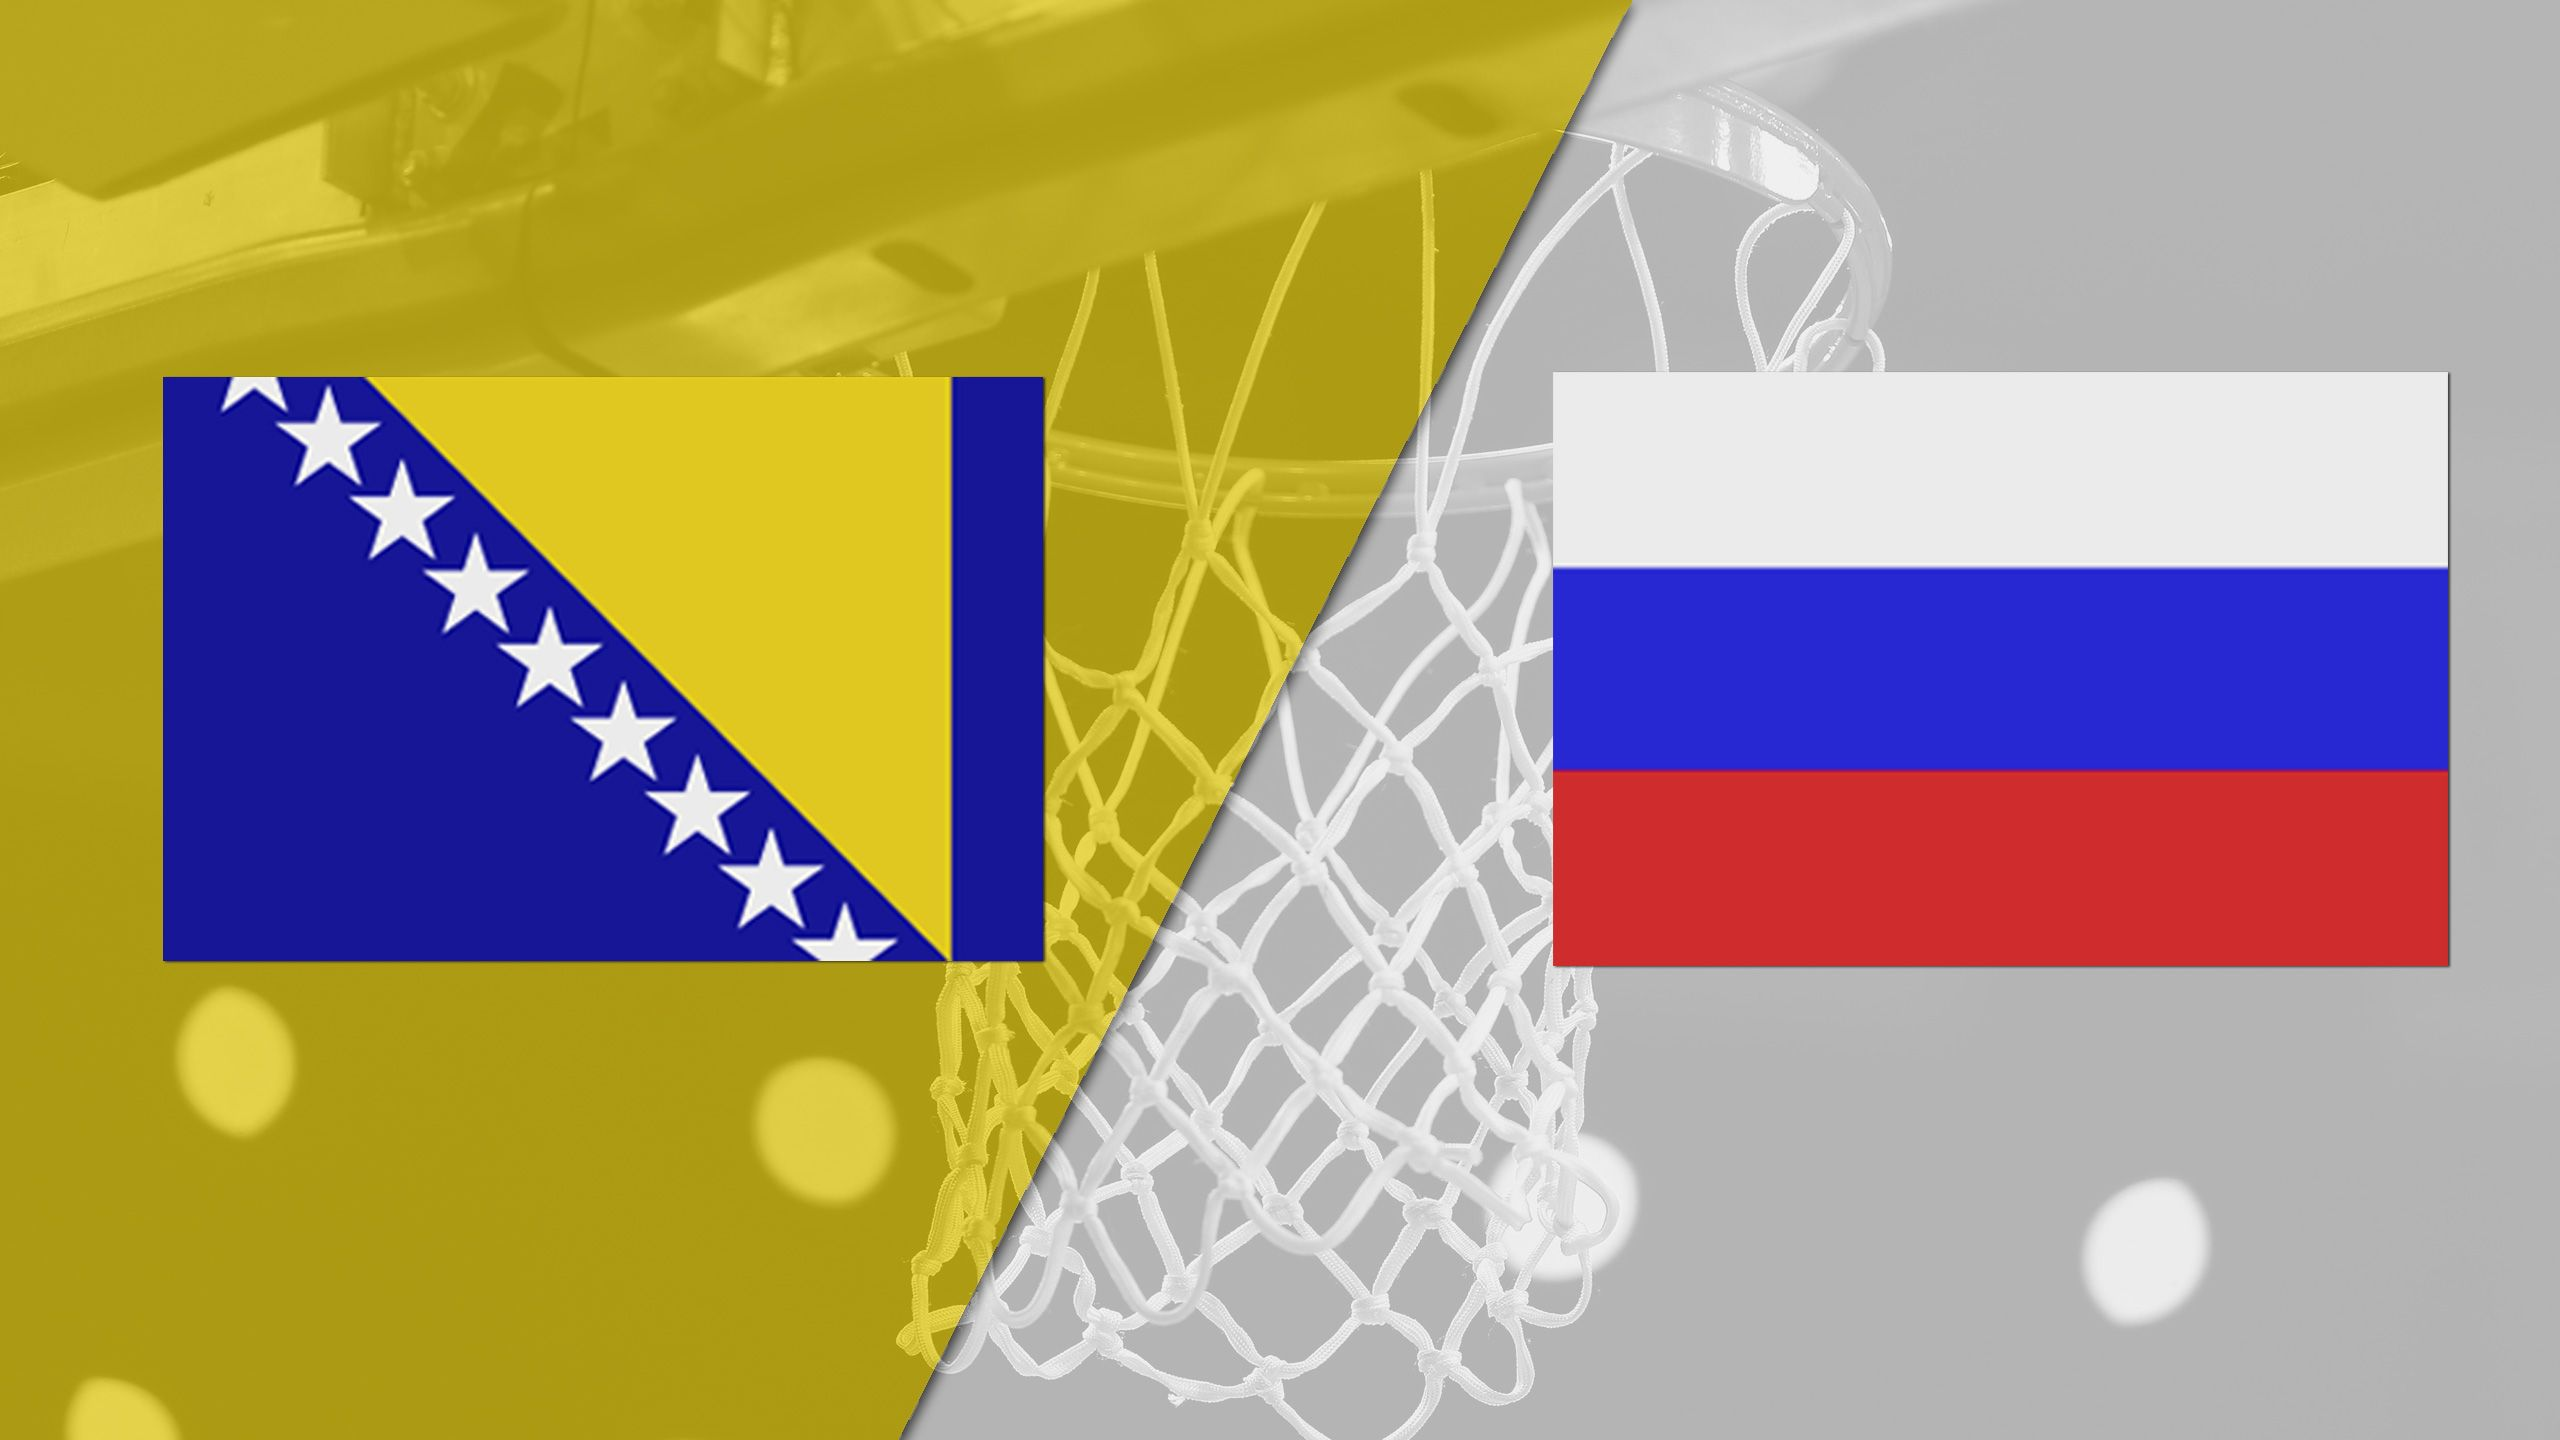 Bosnia-Herzegovina vs. Russia (FIBA World Cup 2019 Qualifier)